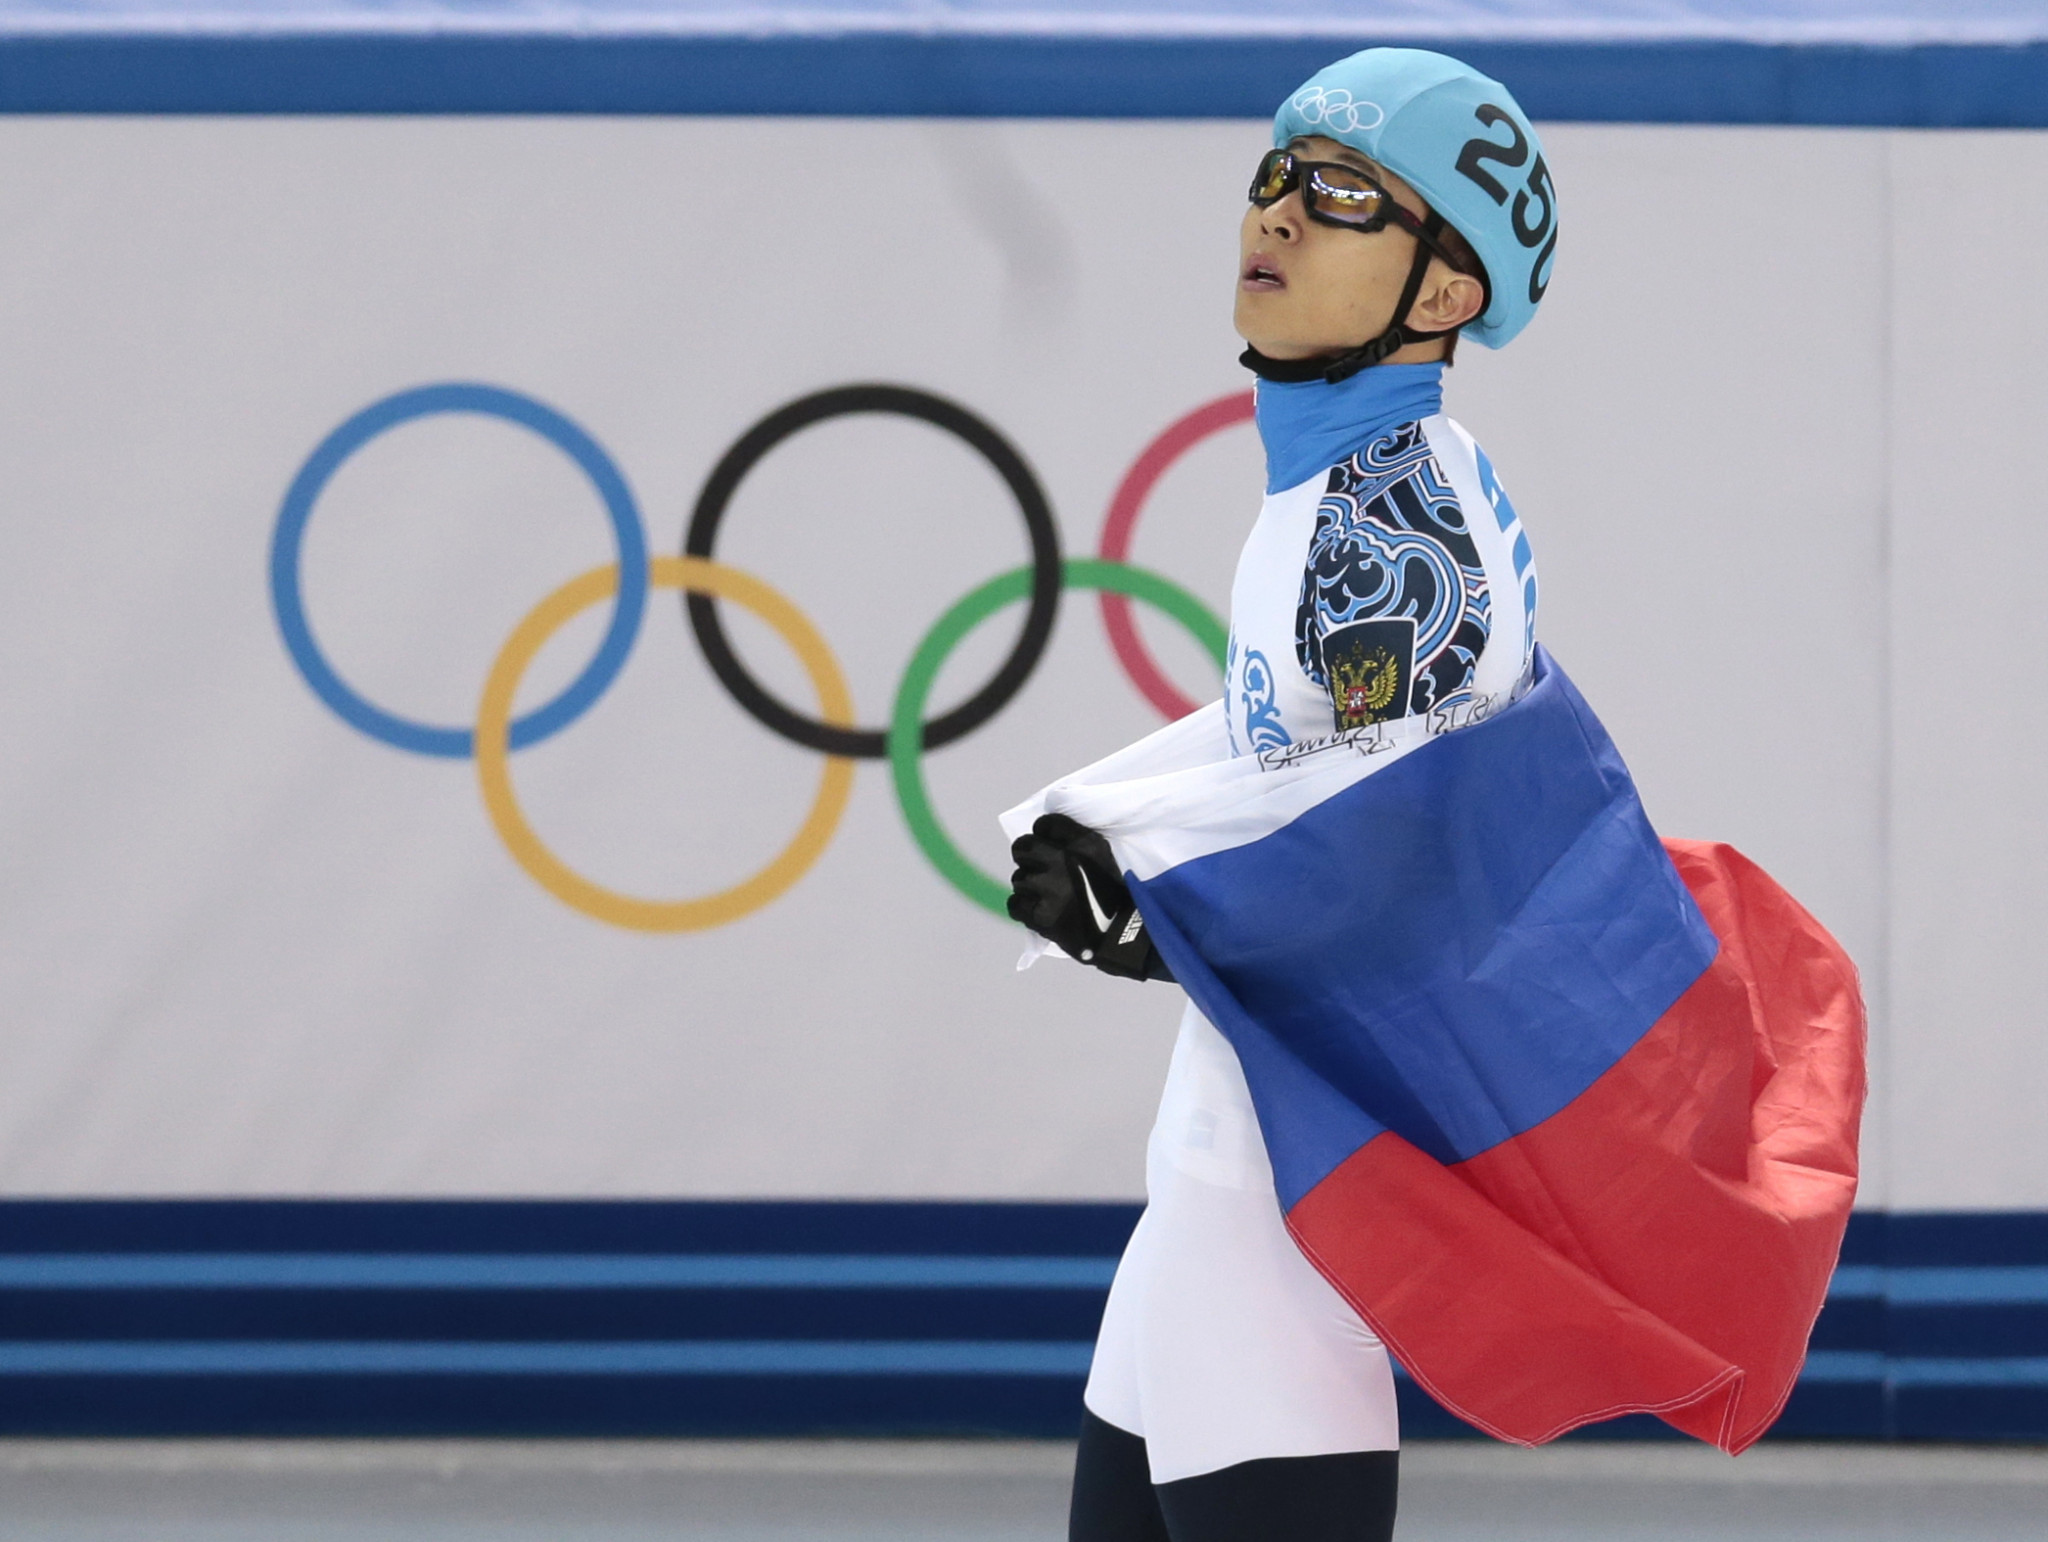 Victor Ahn is among 32 Russians appealing to CAS after they were banned from Pyeongchang 2018 ©Getty Images